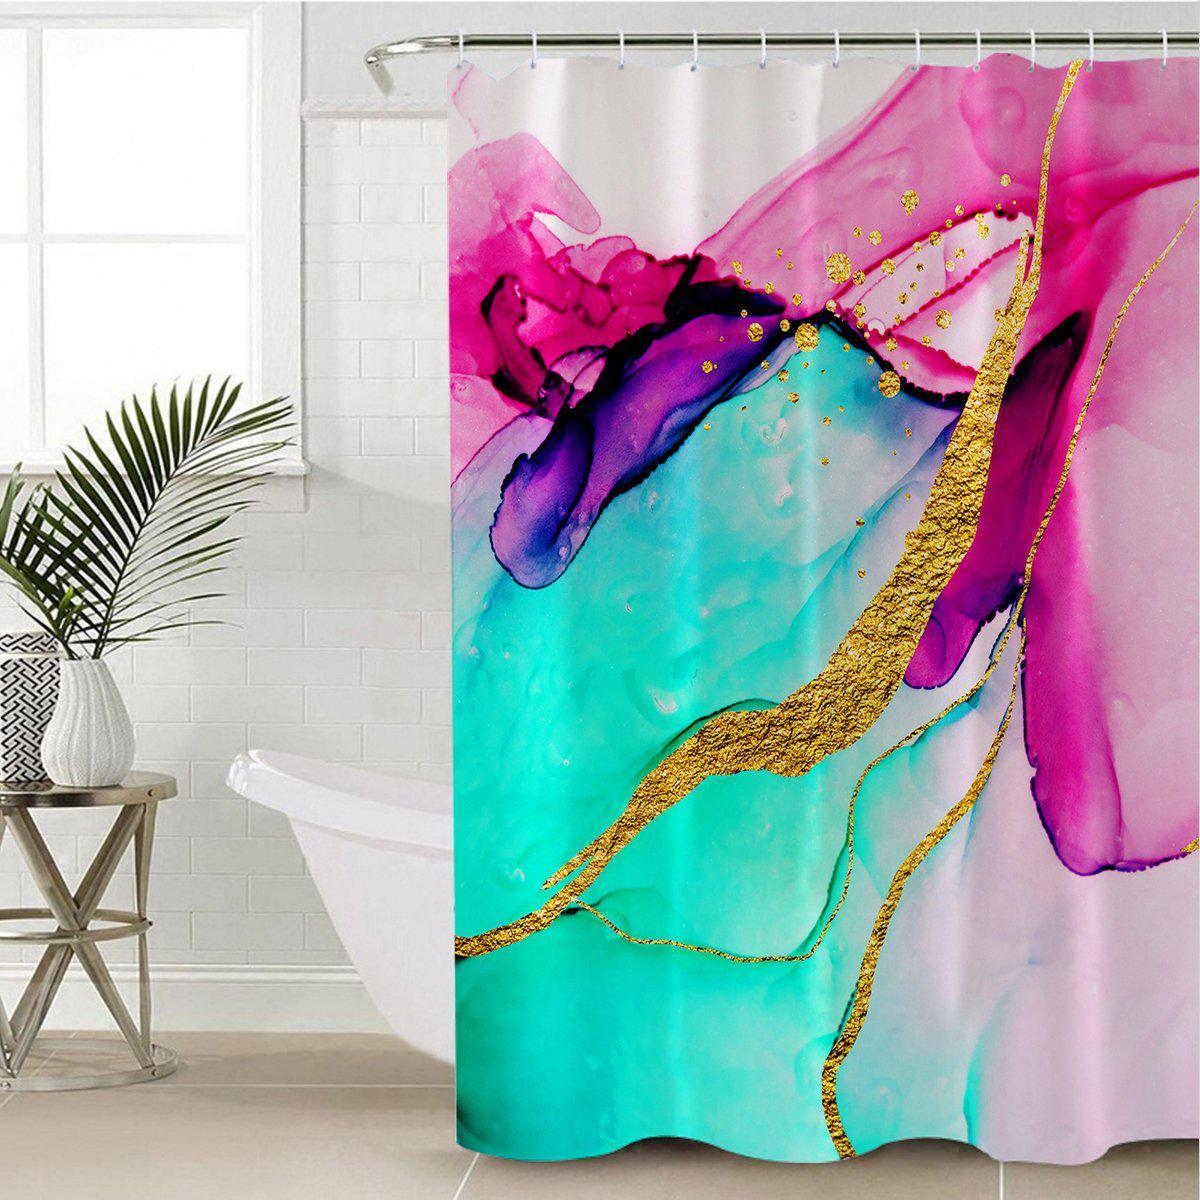 Anse Source D'Argent Shower Curtain